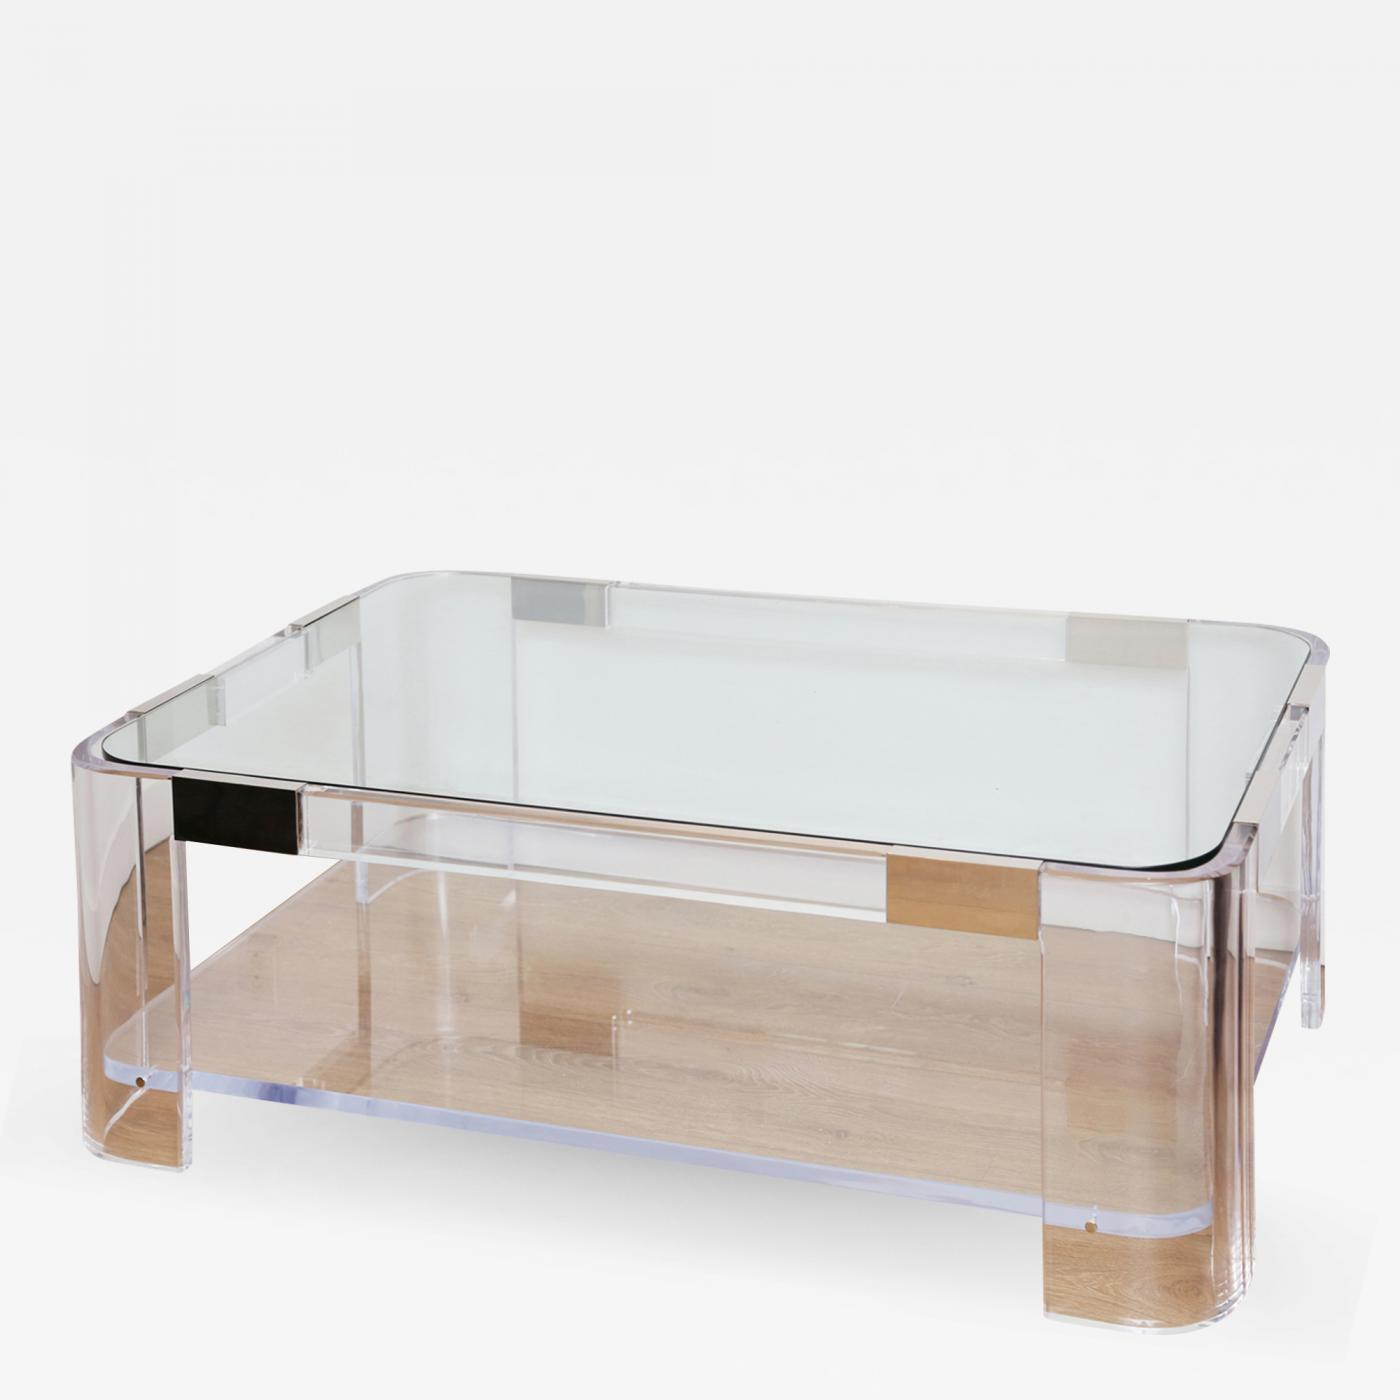 Super Charles Hollis Jones Large Lucite Two Tier Coffee Table By Charles Hollis Jones Ocoug Best Dining Table And Chair Ideas Images Ocougorg